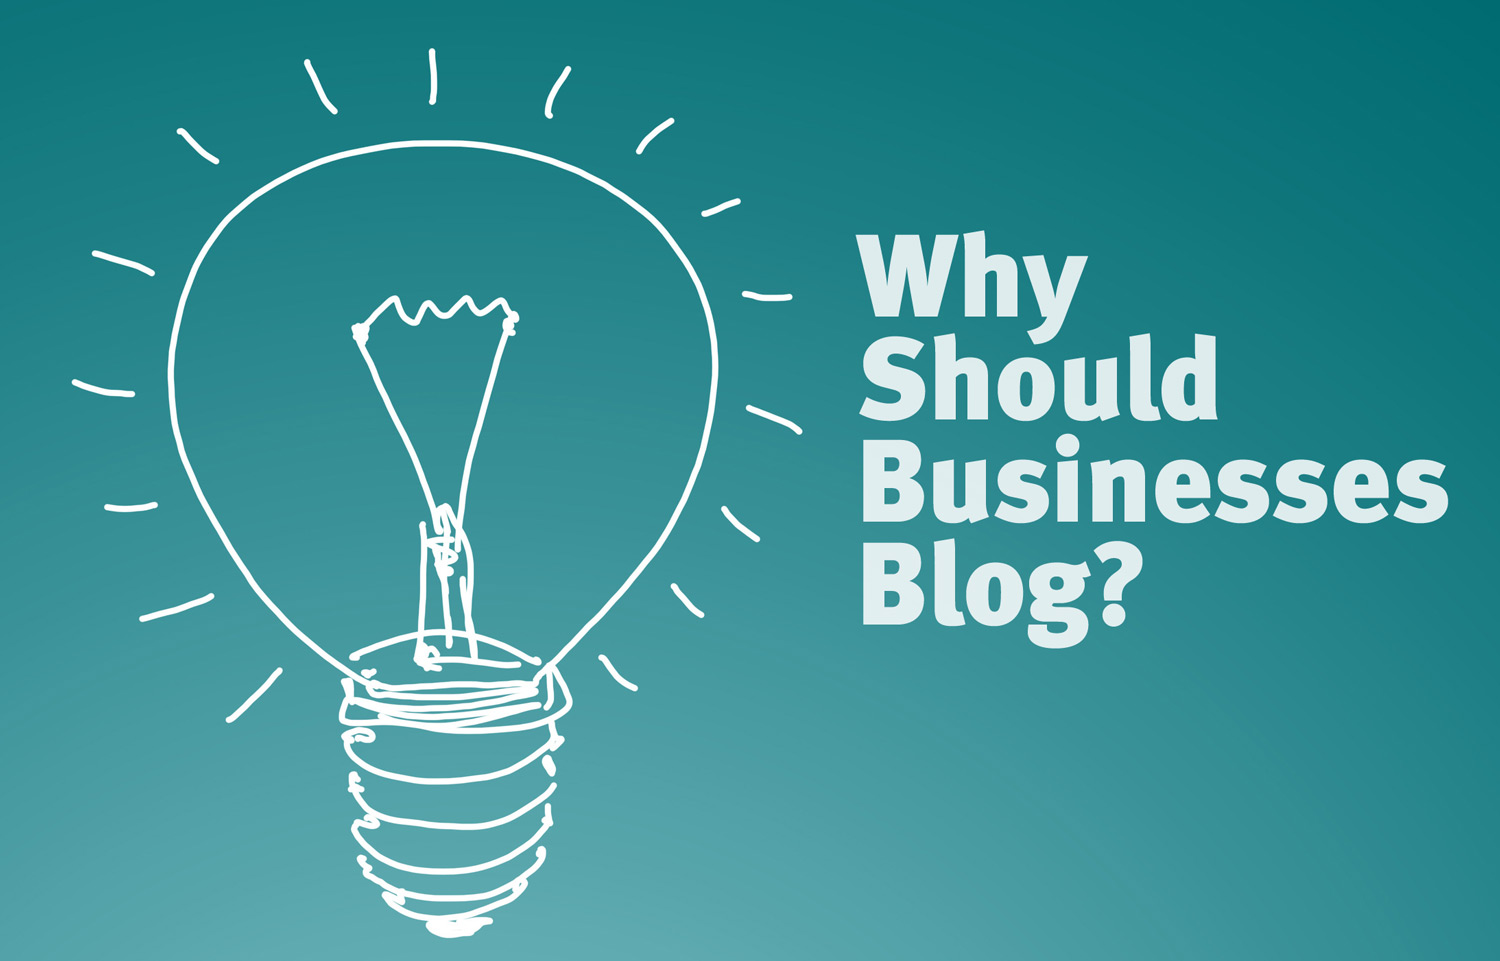 7 Reasons Why Businesses Should Blog